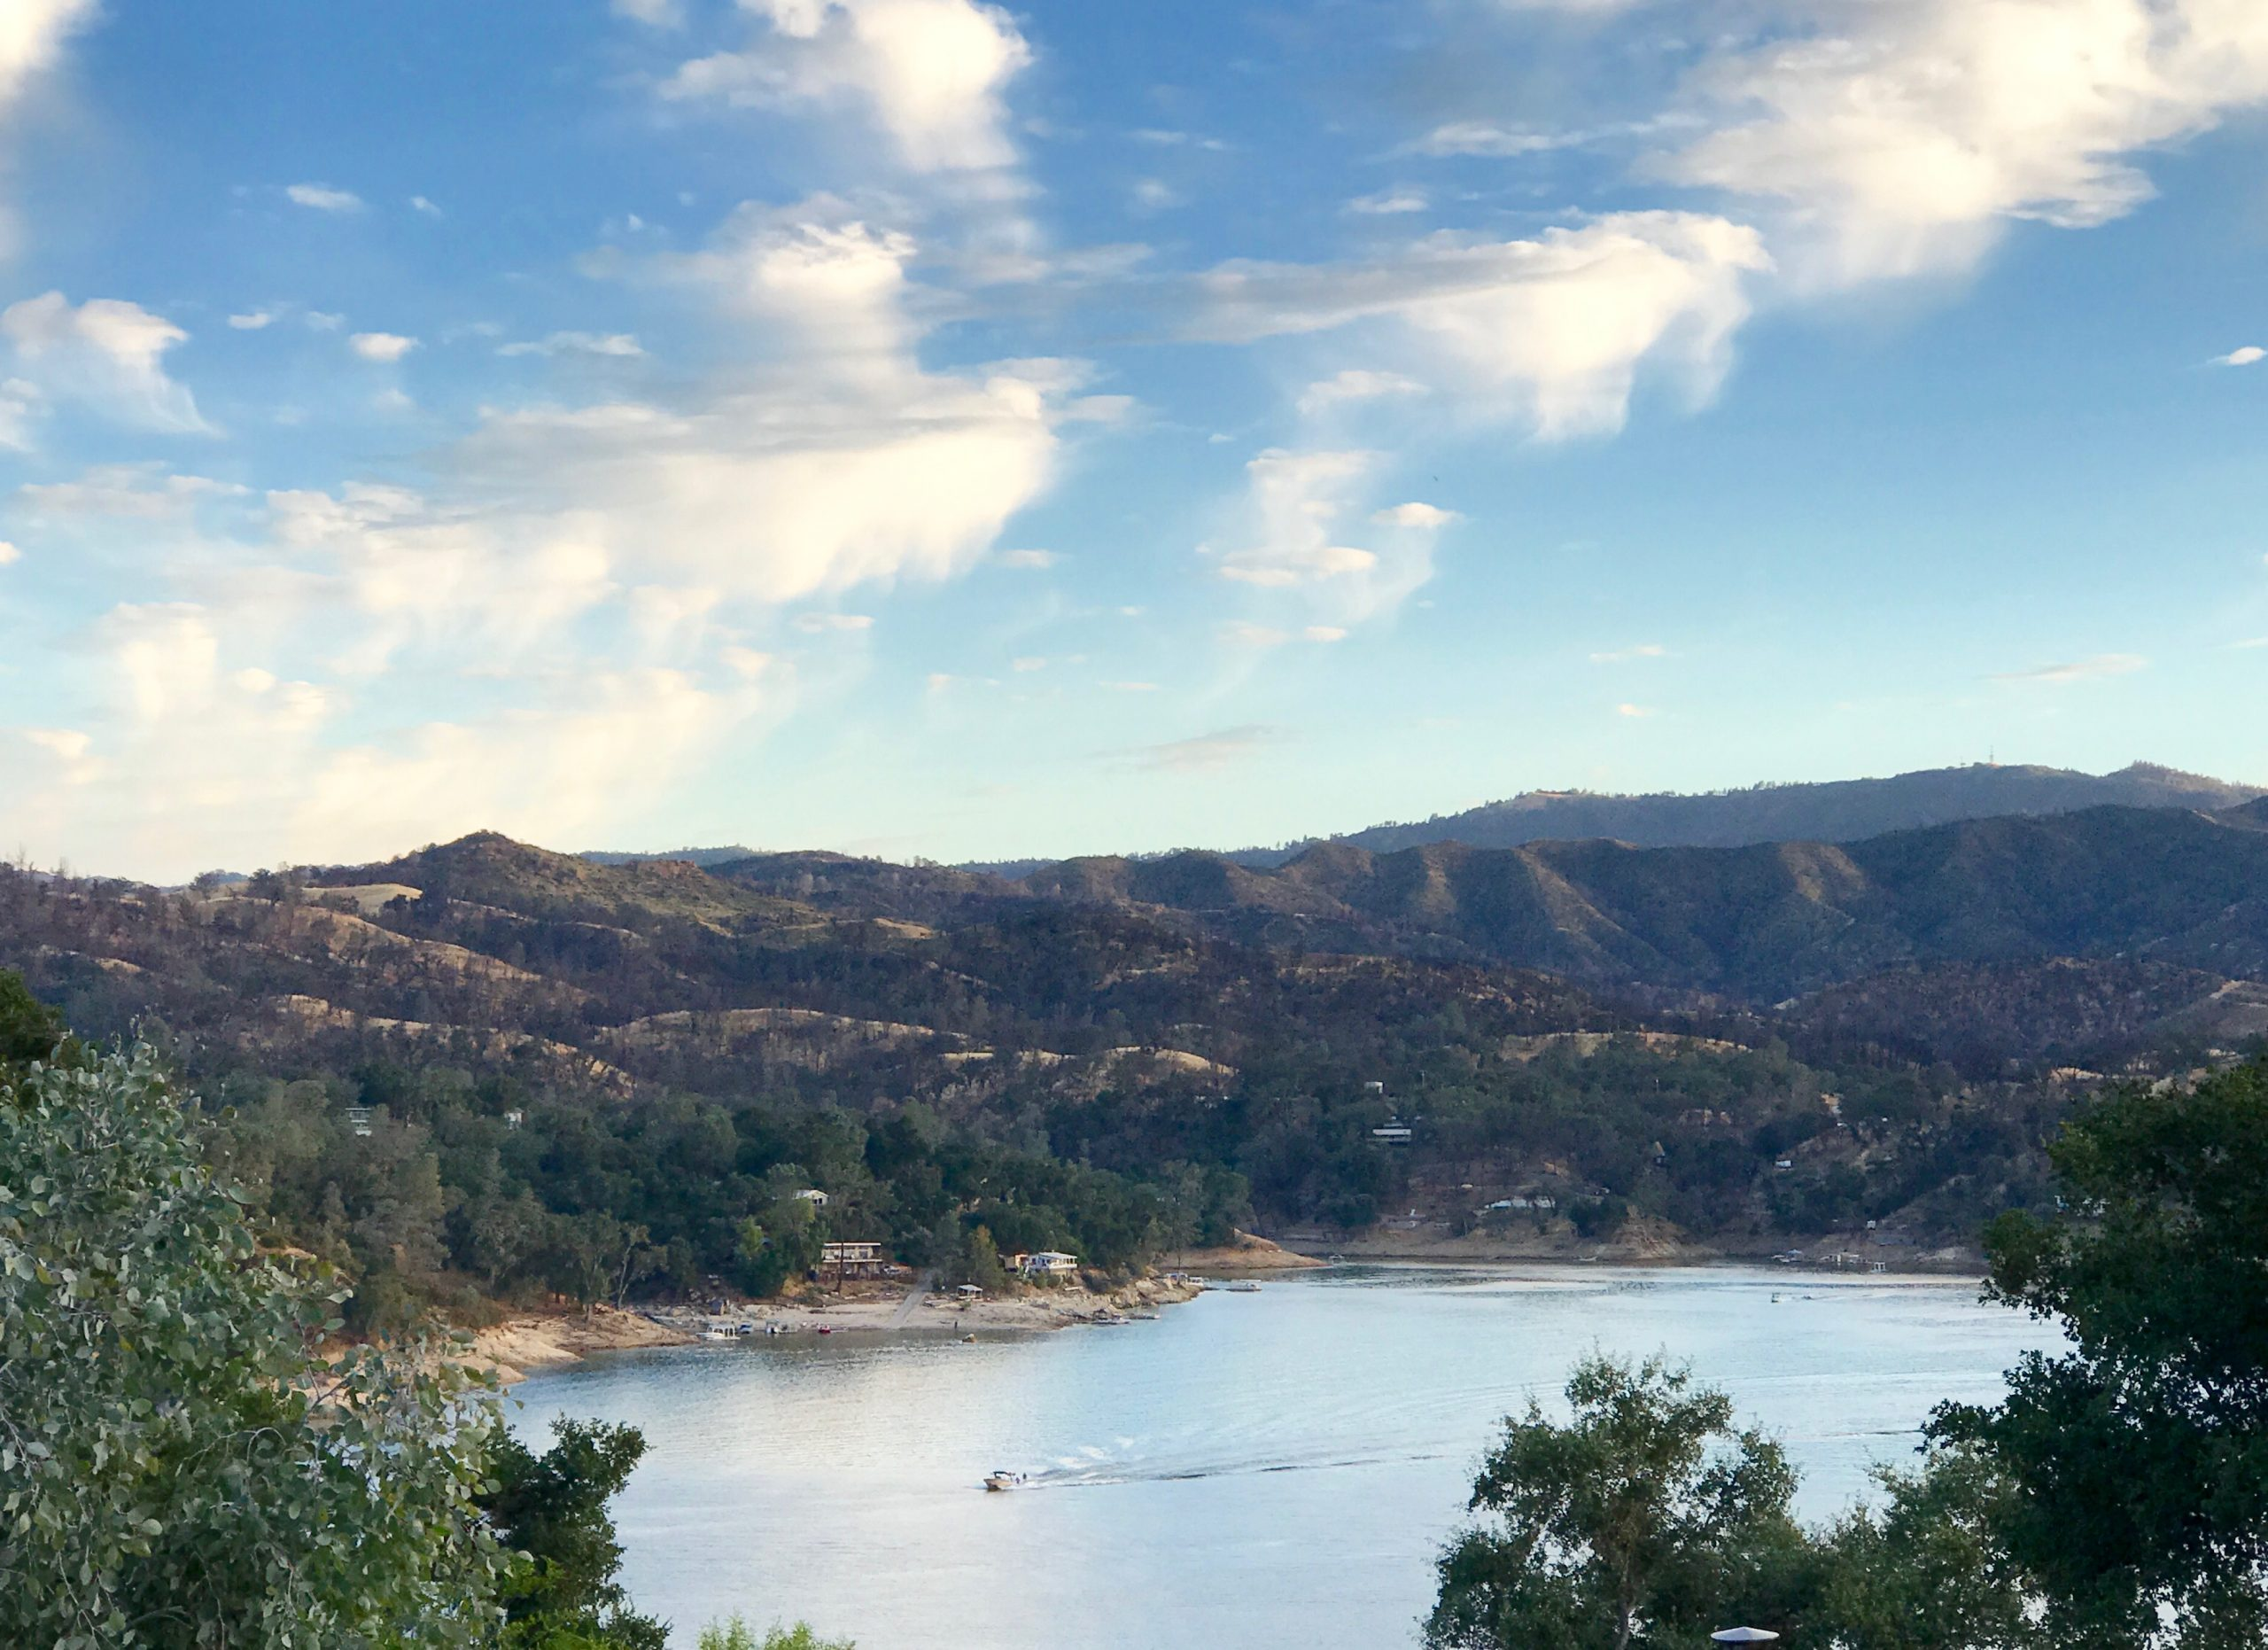 View of Lake Nacimiento near Paso Robles, CA